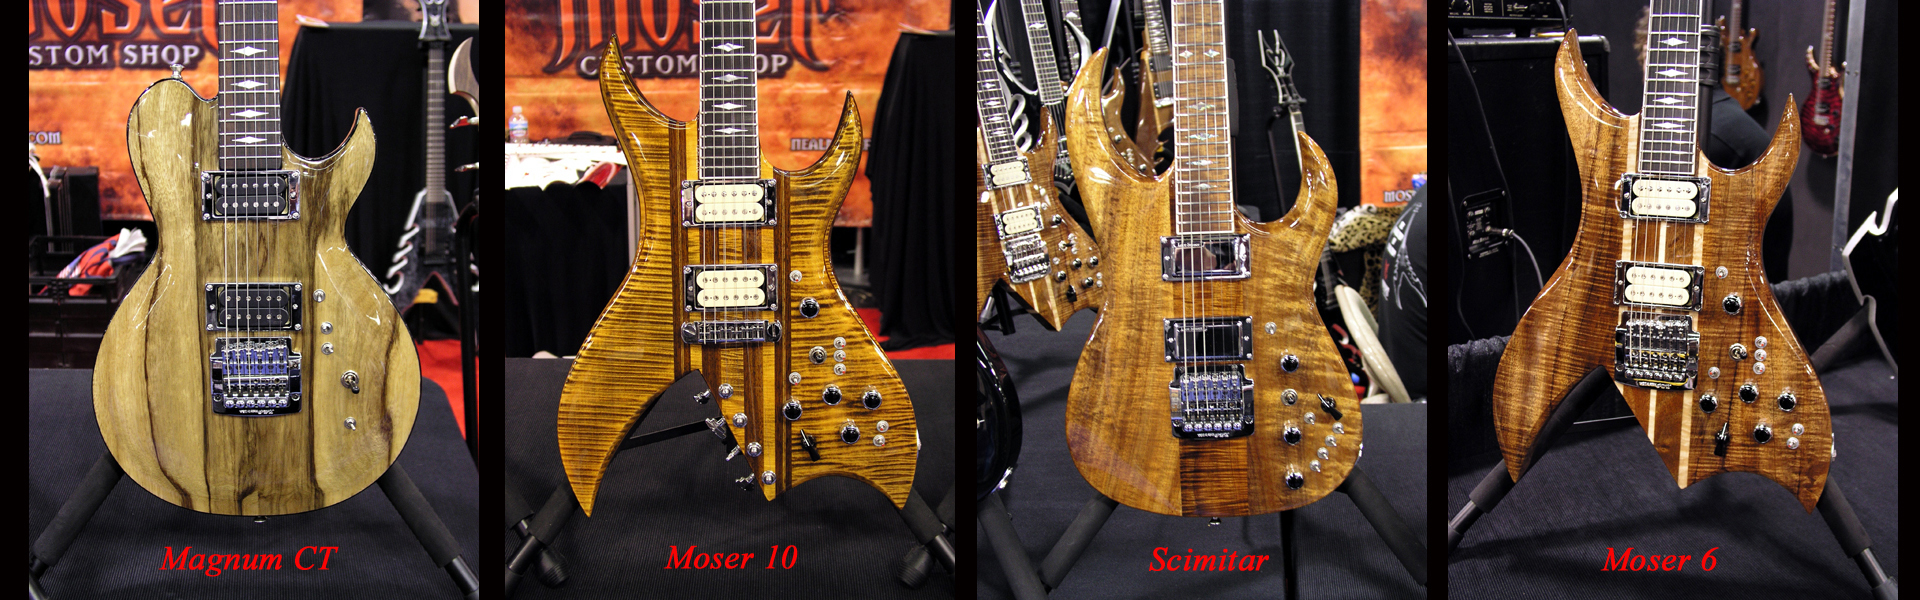 Moser Guitars at NAMM